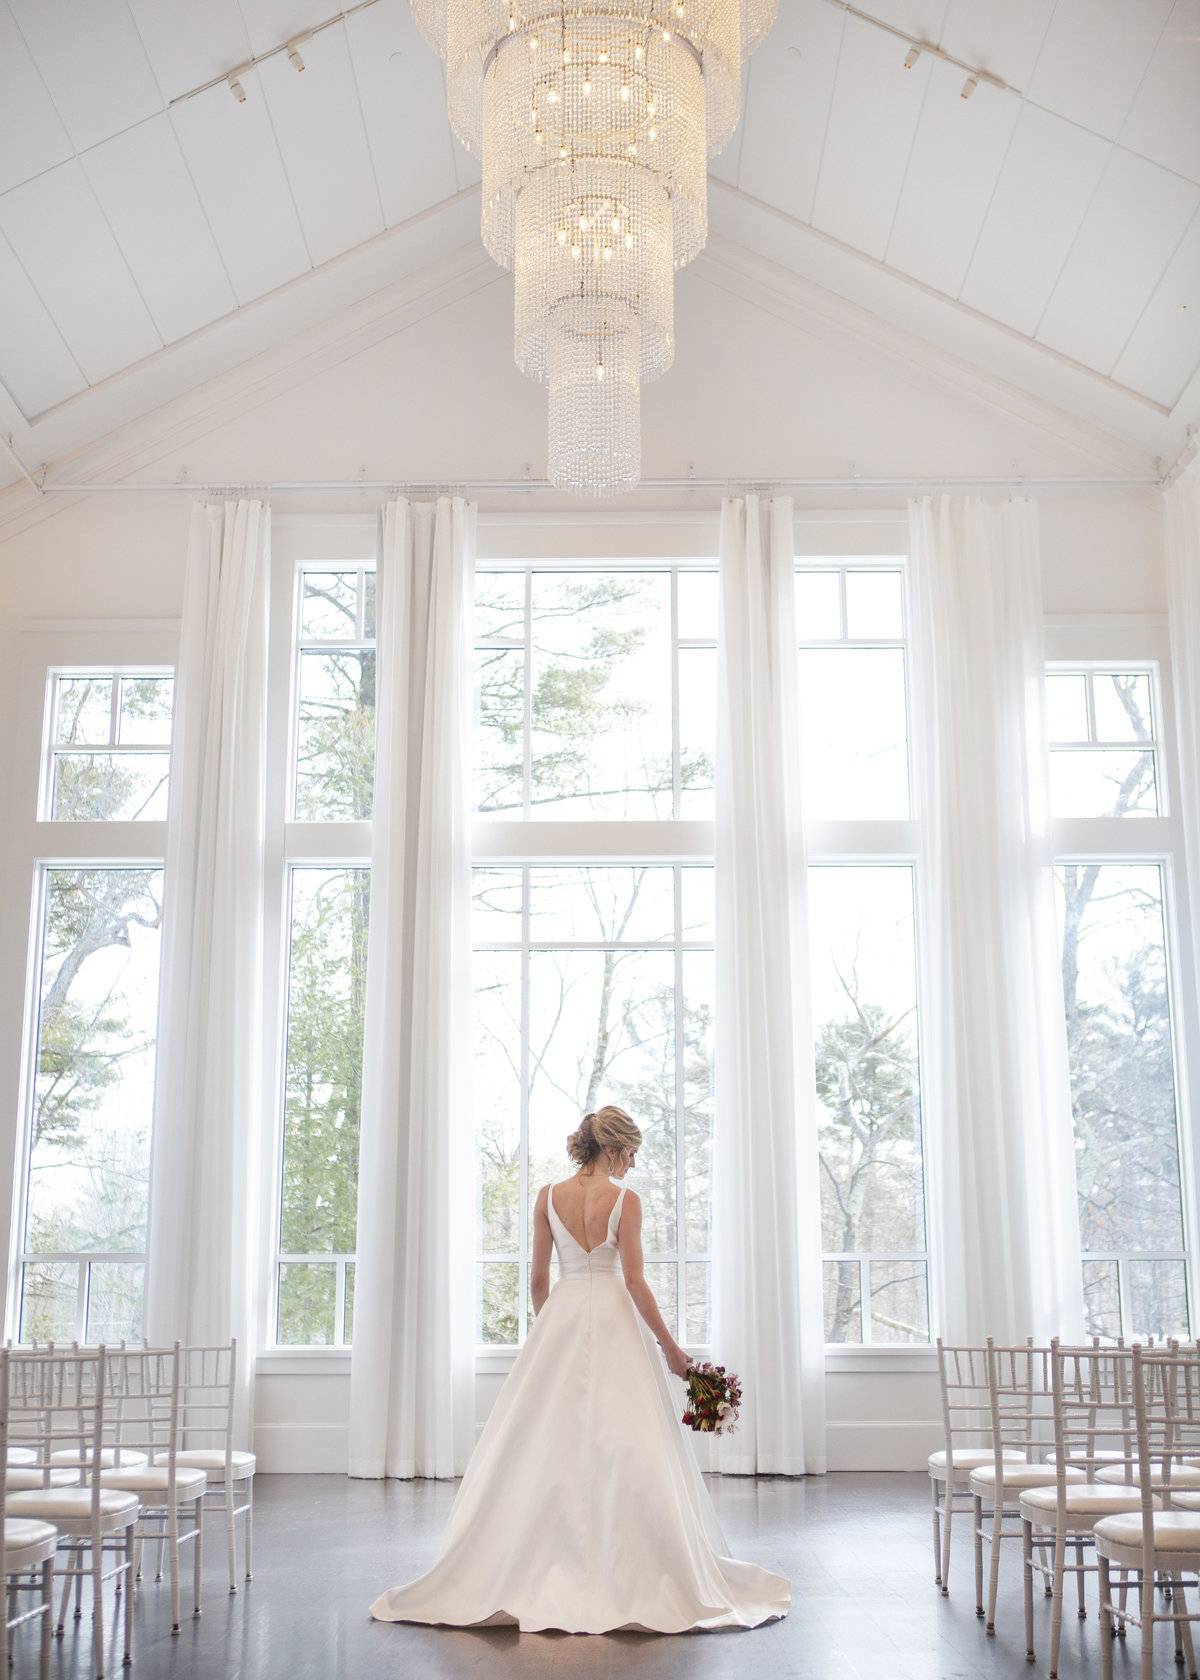 Lakeview-Pavilion-wedding-Kelly-Pomeroy-Photography-93